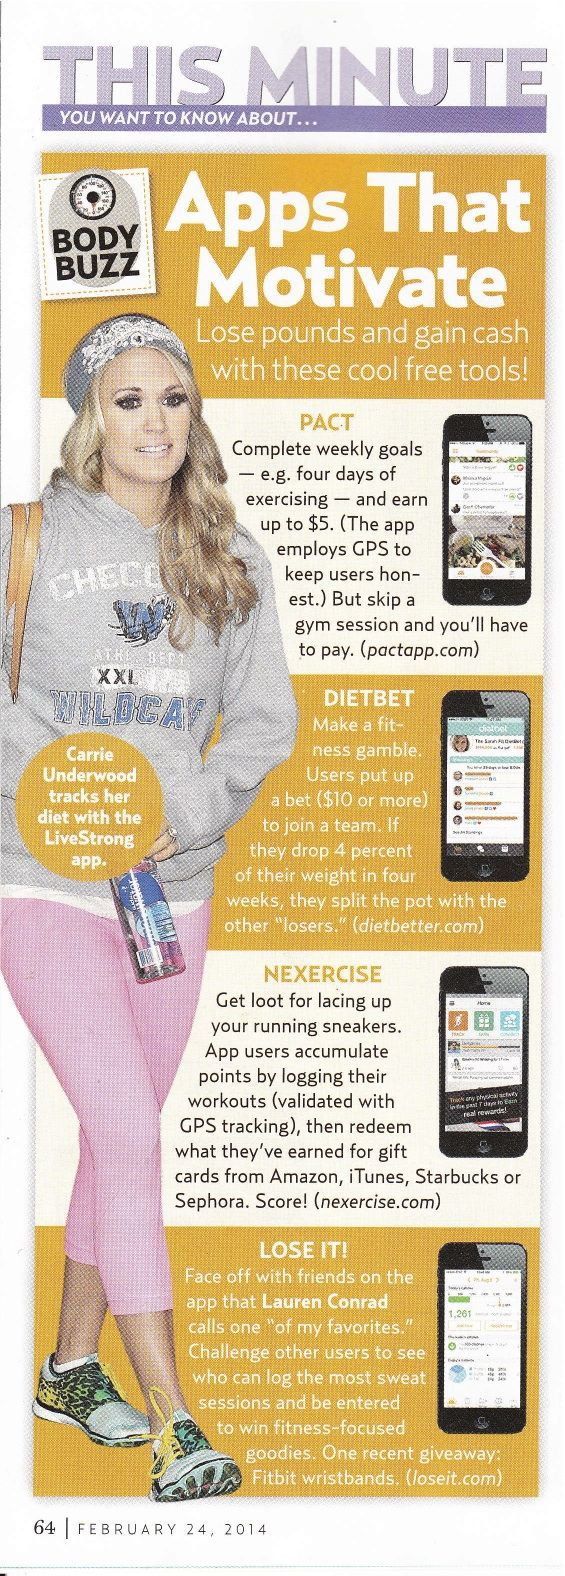 Apps That Motivate: #USWeekly names #Nexercise a top fitness app in this week's edition